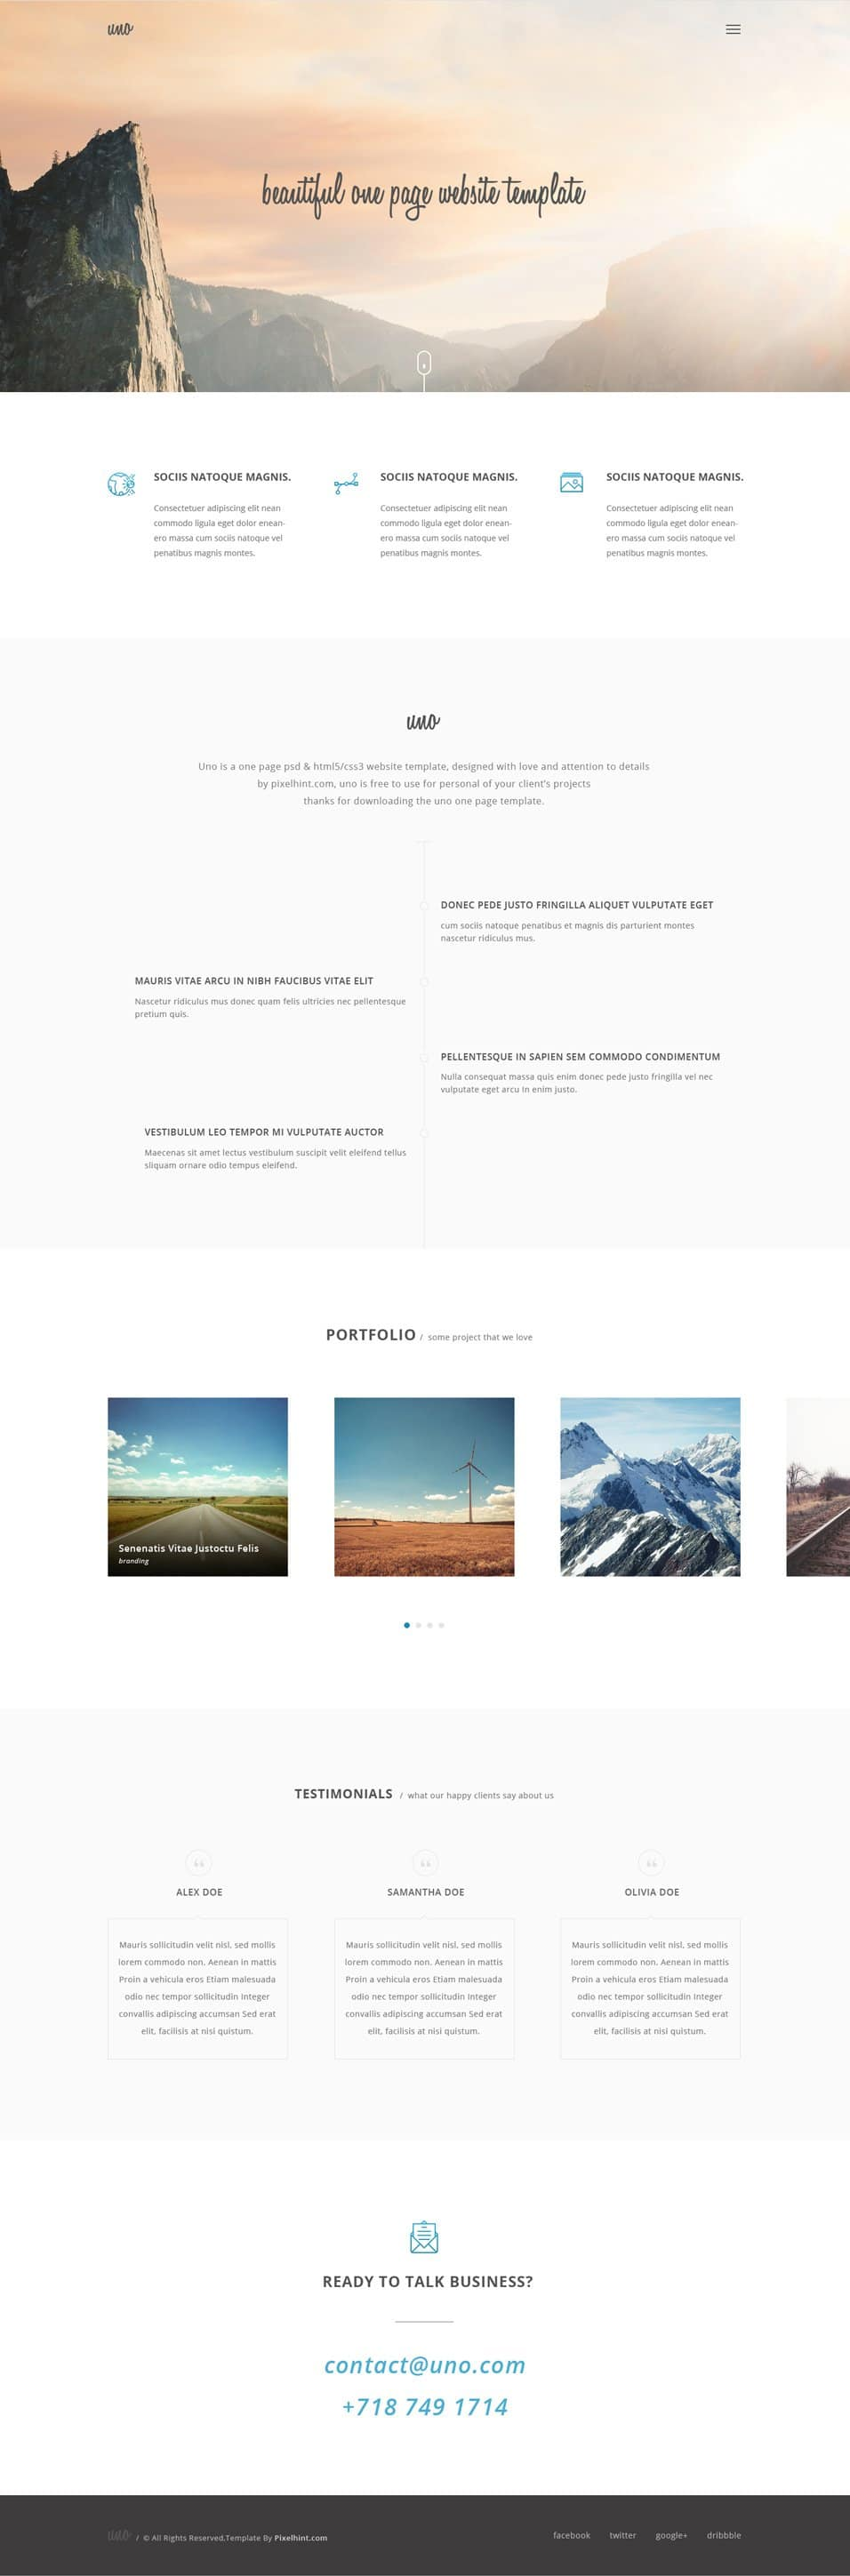 Uno – Free Elegant One Page/Single Page Website Template PSD